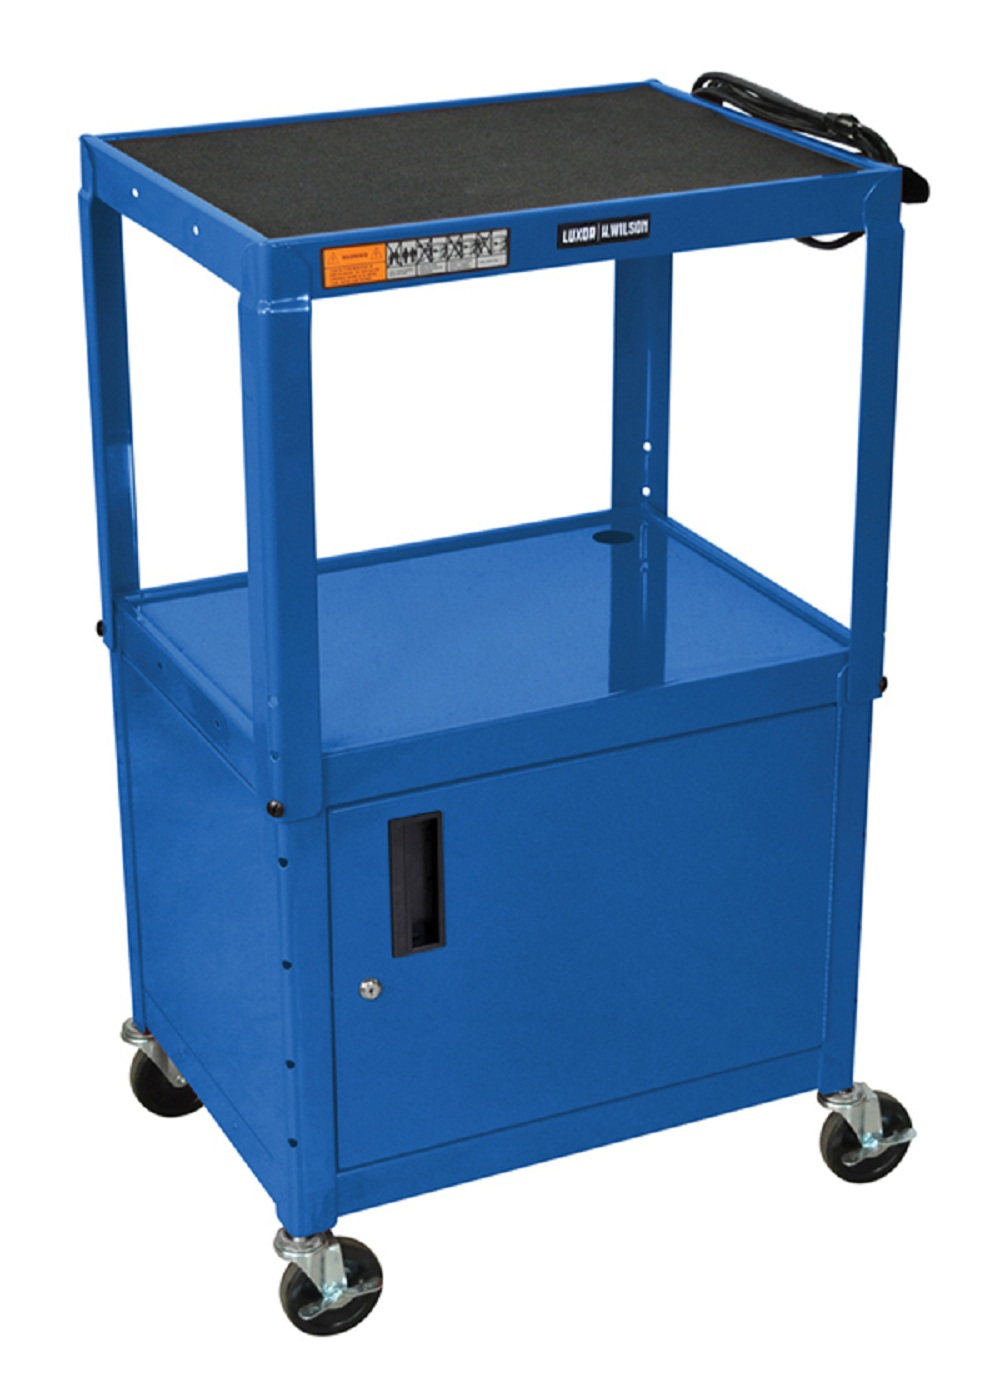 Offex Blue Rolling Height Adjustable Steel AV Storage Utility Cart With Lockable Cabinet, Electric, 4